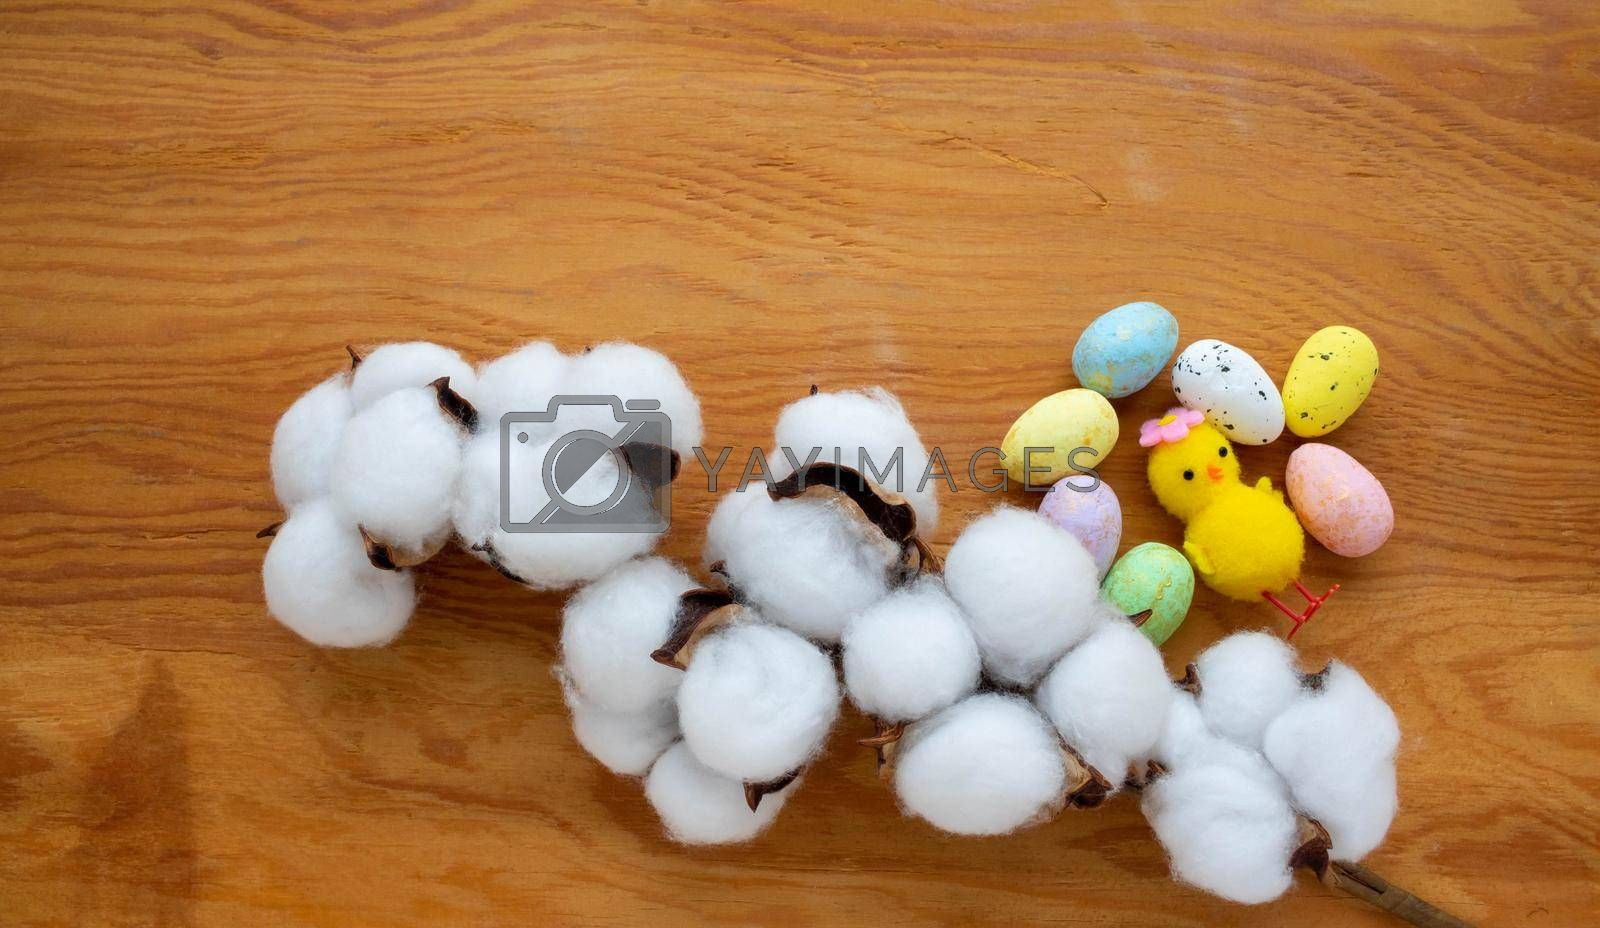 Dried white fluffy cotton flower, chicken and small colored eggs on a wooden background, close-up, copy space, top view. The concept of Easter.